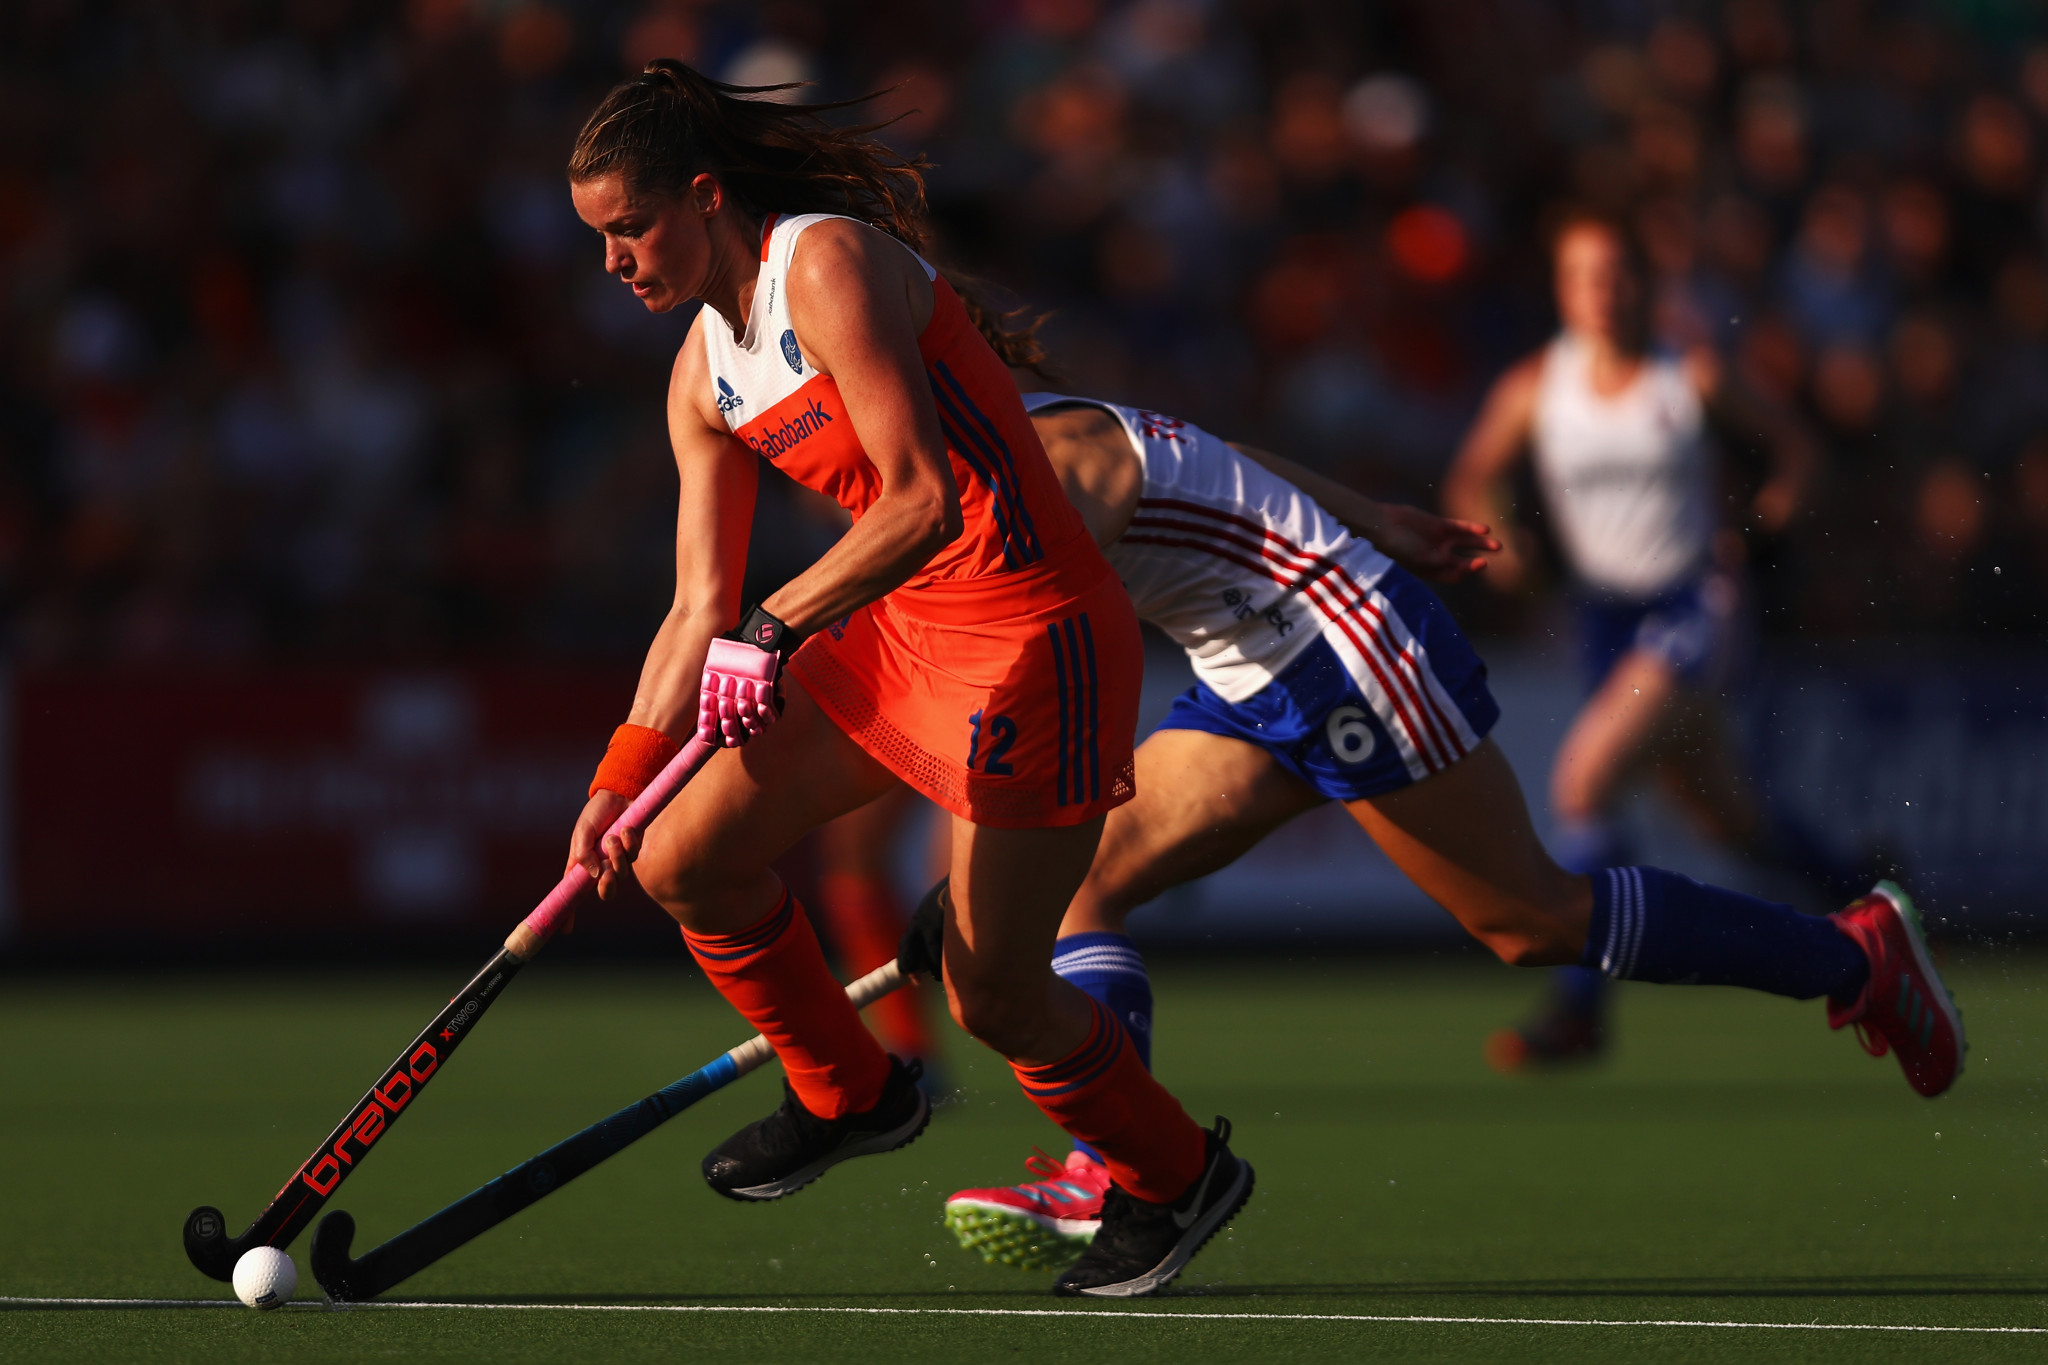 Two goals in the first 20 minutes were enough for the Dutch to beat Britain ©Getty Images